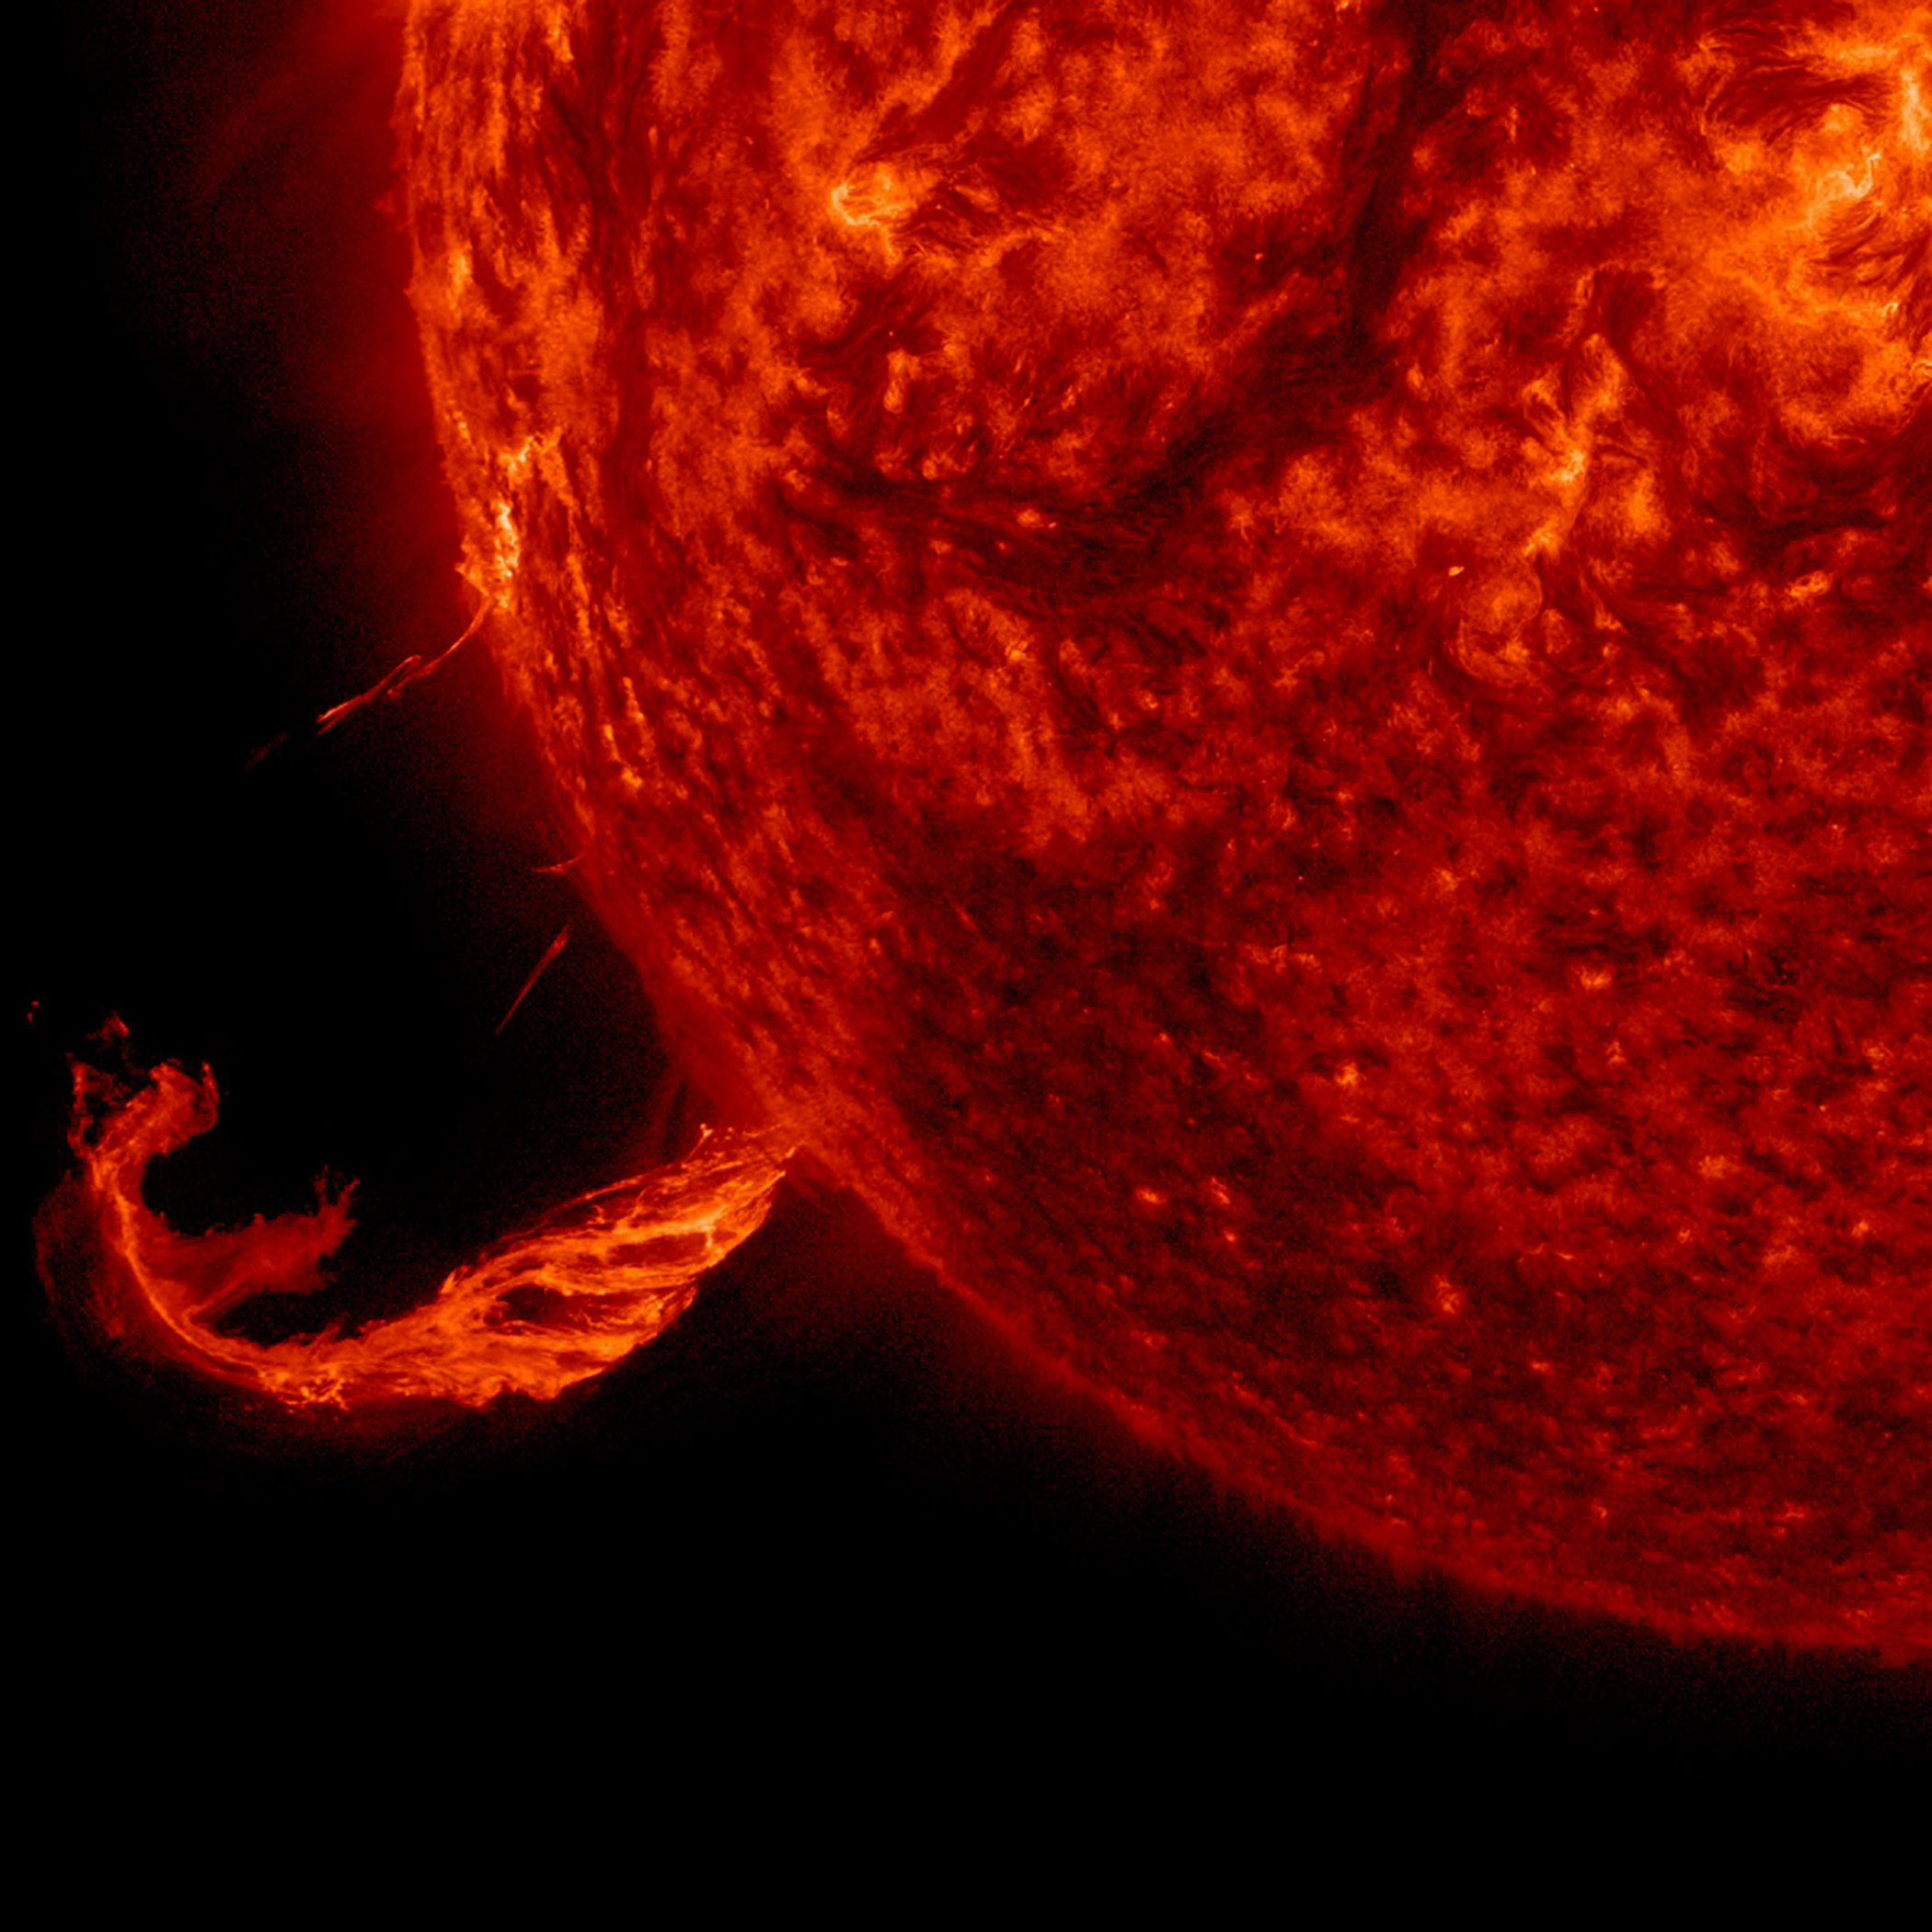 The Sun blew out a coronal mass ejection along with part of a solar filament over a three-hour period on Feb. 24, 2015. While some of the strands fell back into the Sun, a substantial part raced into space in a bright cloud of particles, as observed by the SOHO spacecraft.